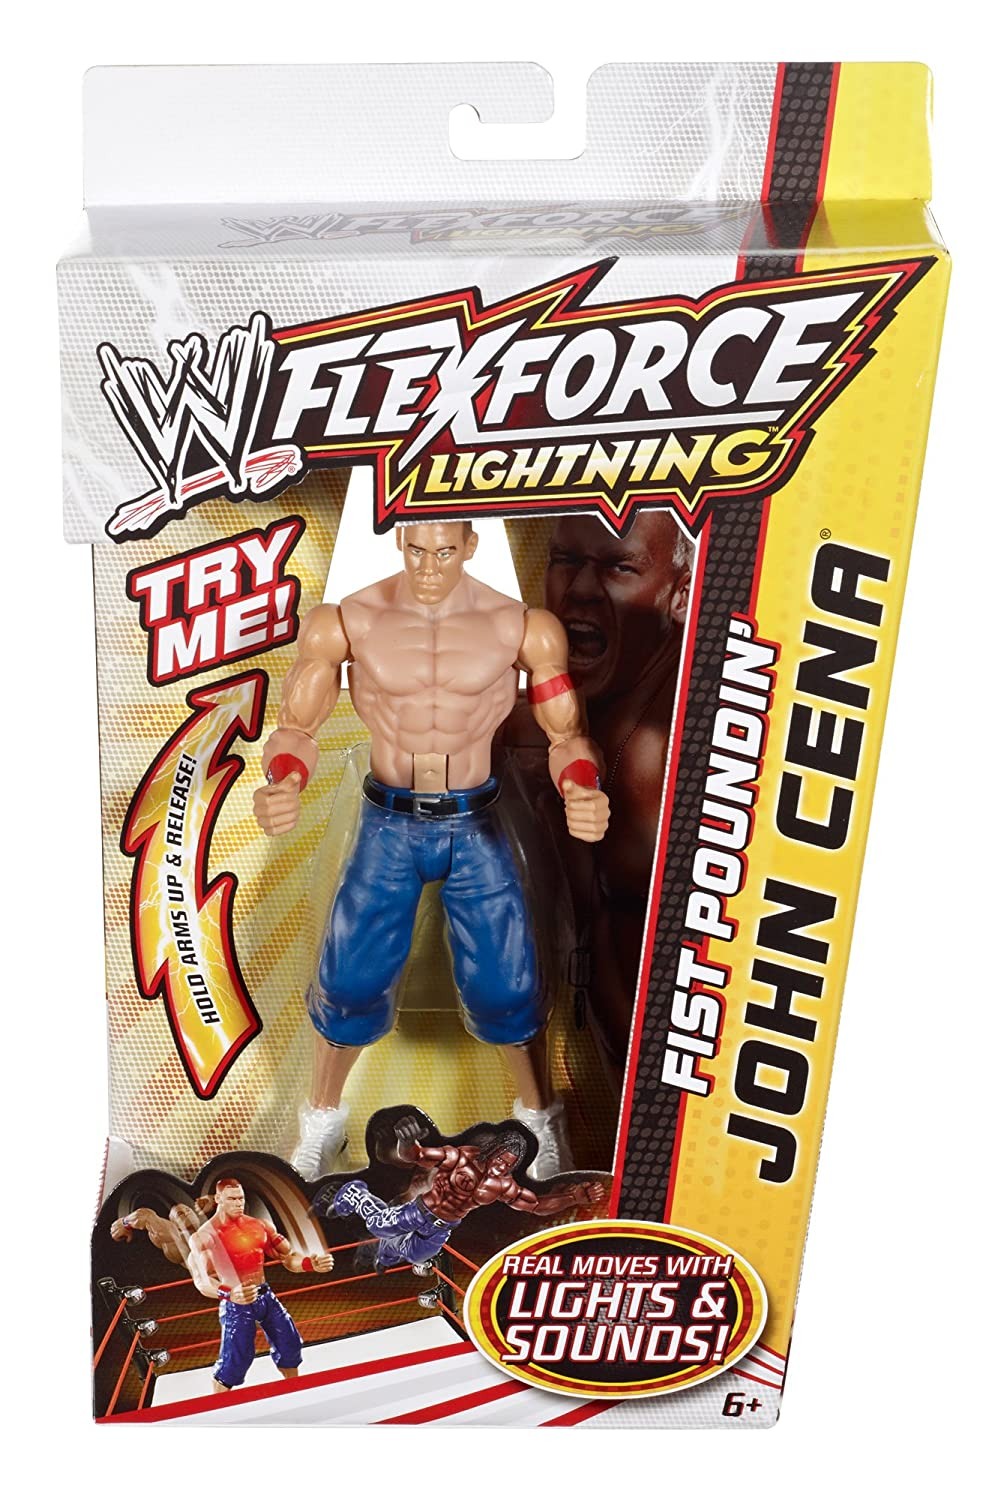 amazon com wwe flexforce lightning fist poundin john cena toys